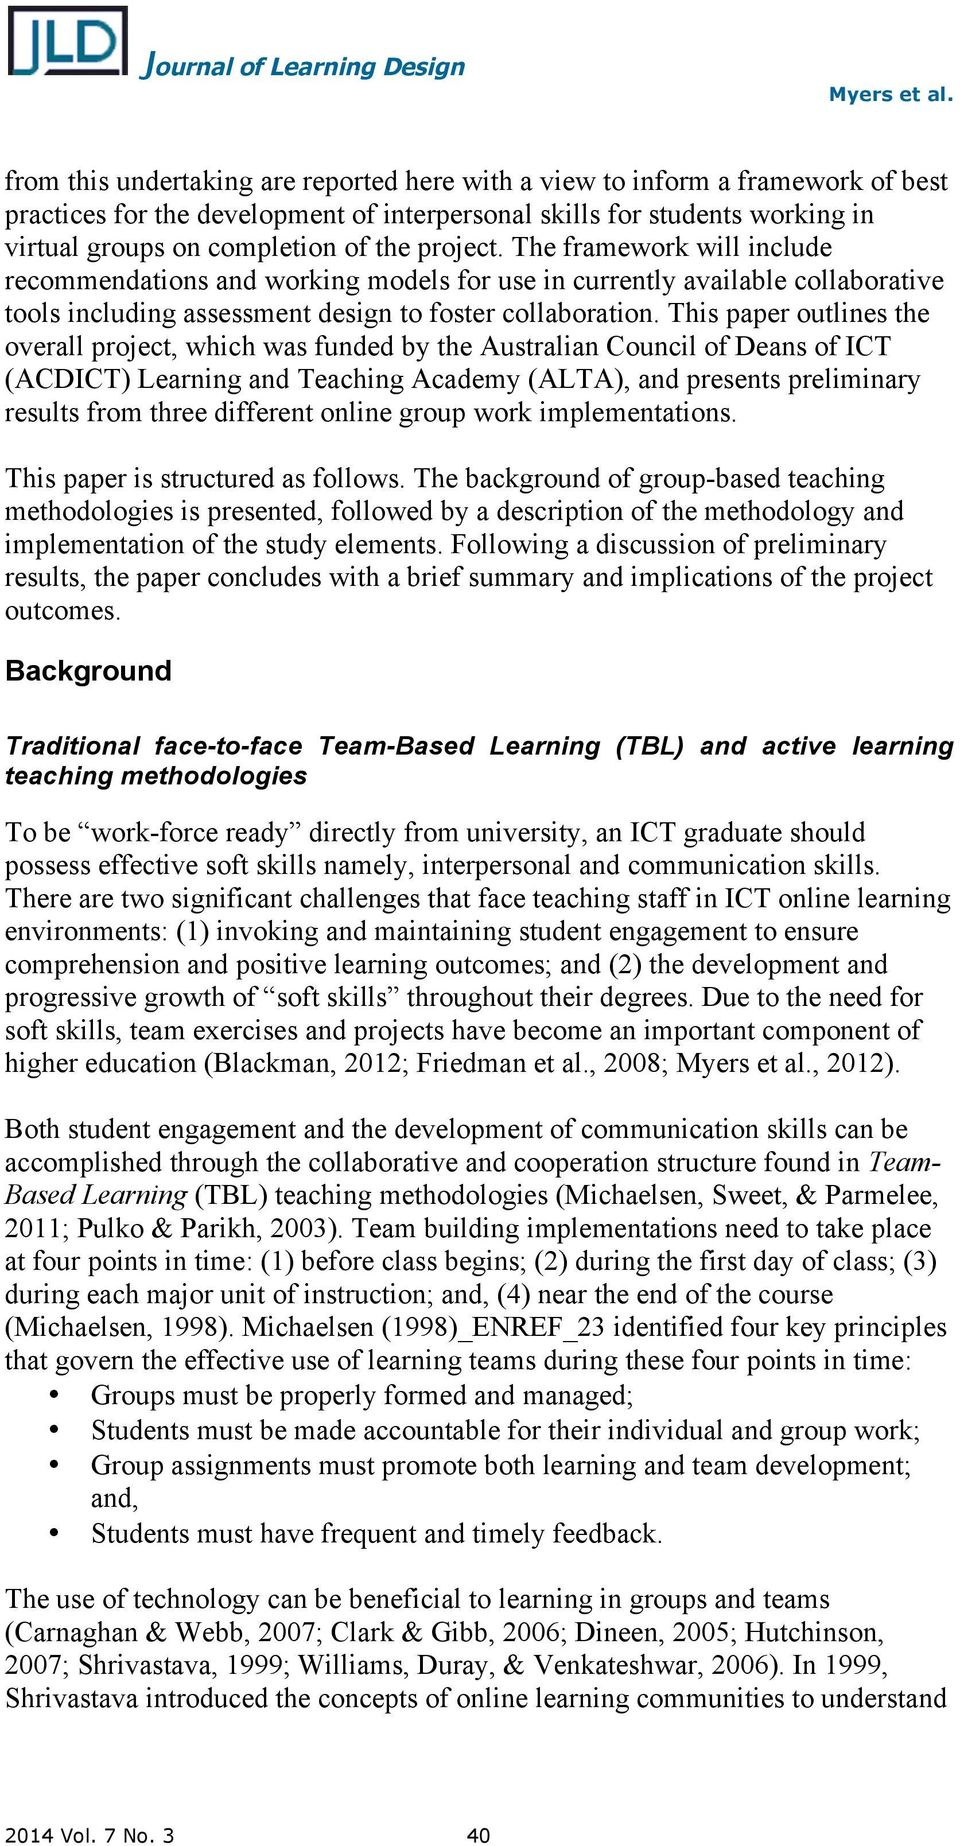 This paper outlines the overall project, which was funded by the Australian Council of Deans of ICT (ACDICT) Learning and Teaching Academy (ALTA), and presents preliminary results from three